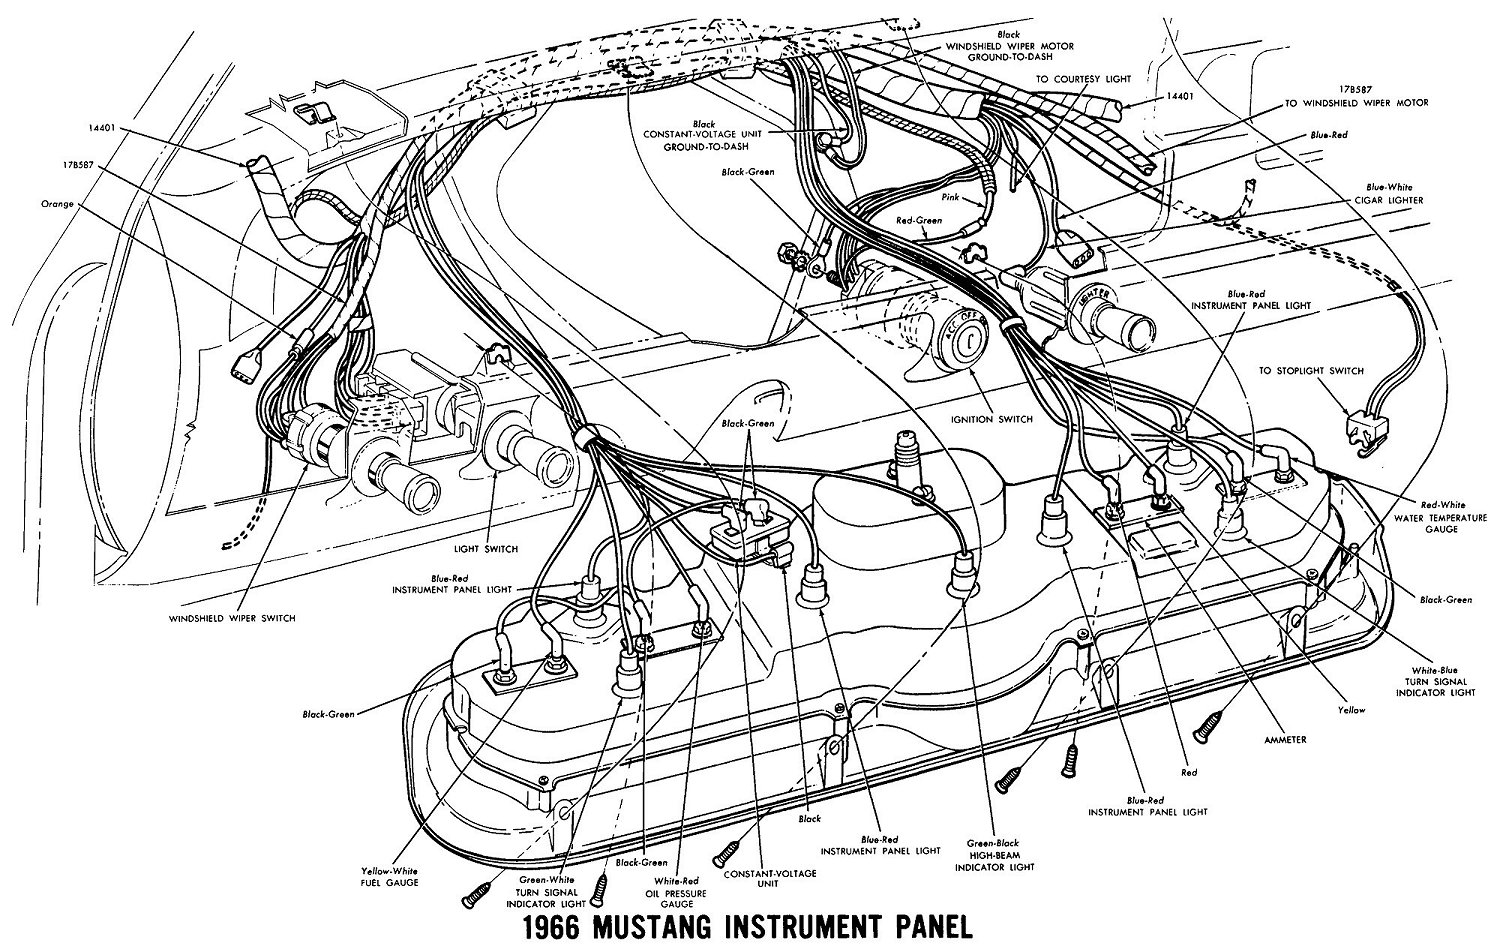 66instr 1966 mustang wiring diagrams average joe restoration 68 mustang headlight wiring diagram at edmiracle.co